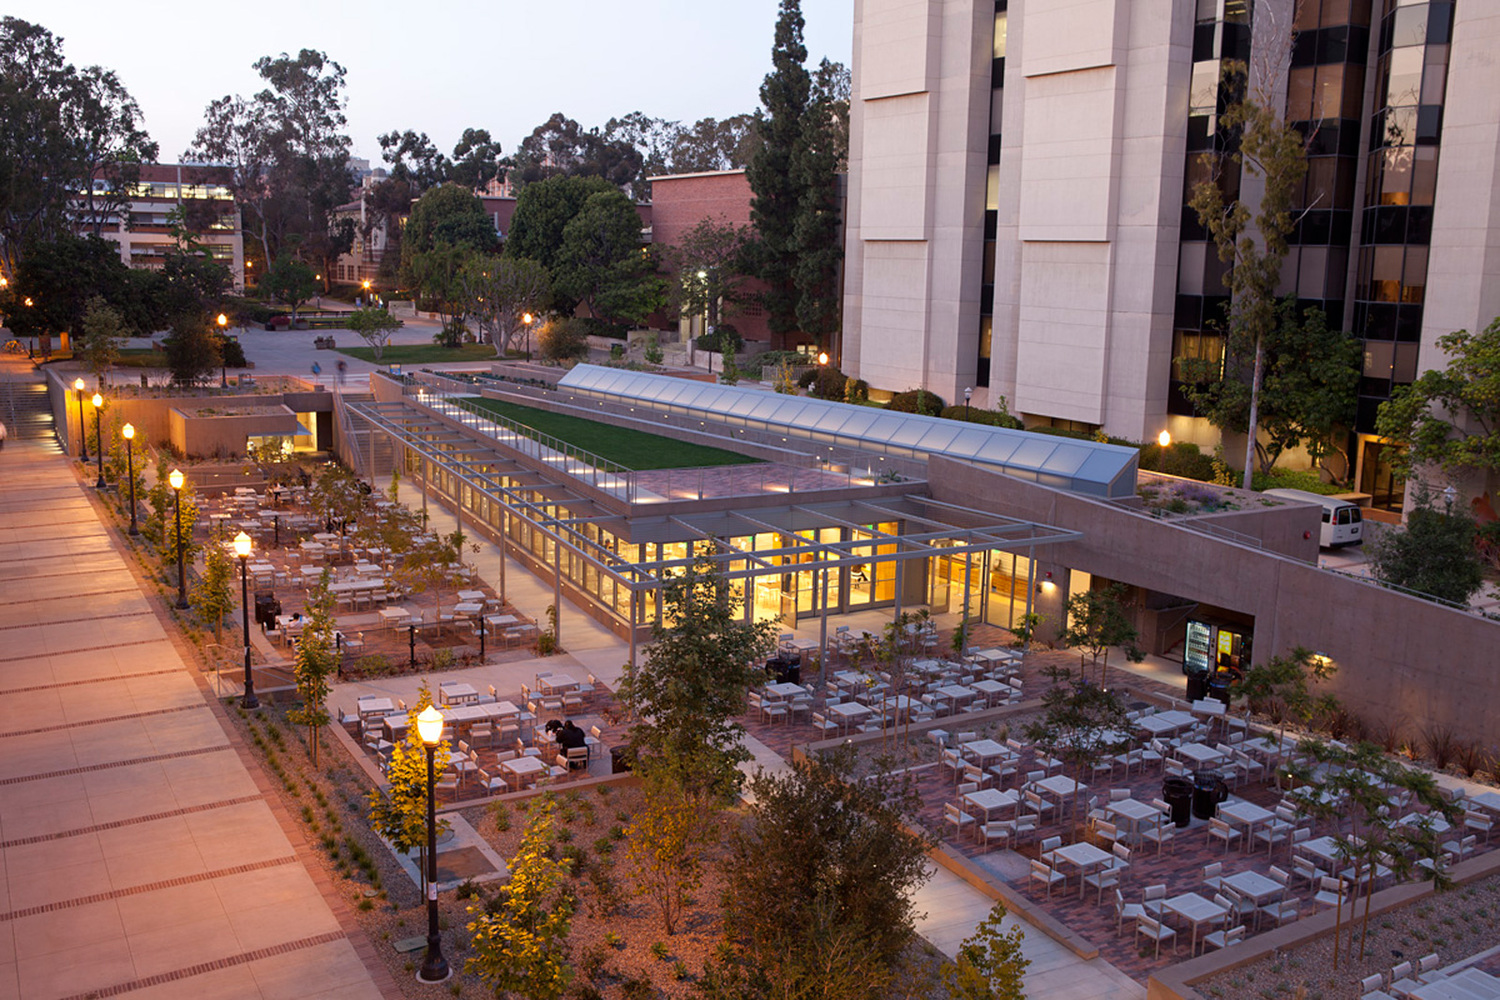 Education Award: University Of California Los Angeles Court Of Sciences  Student Center